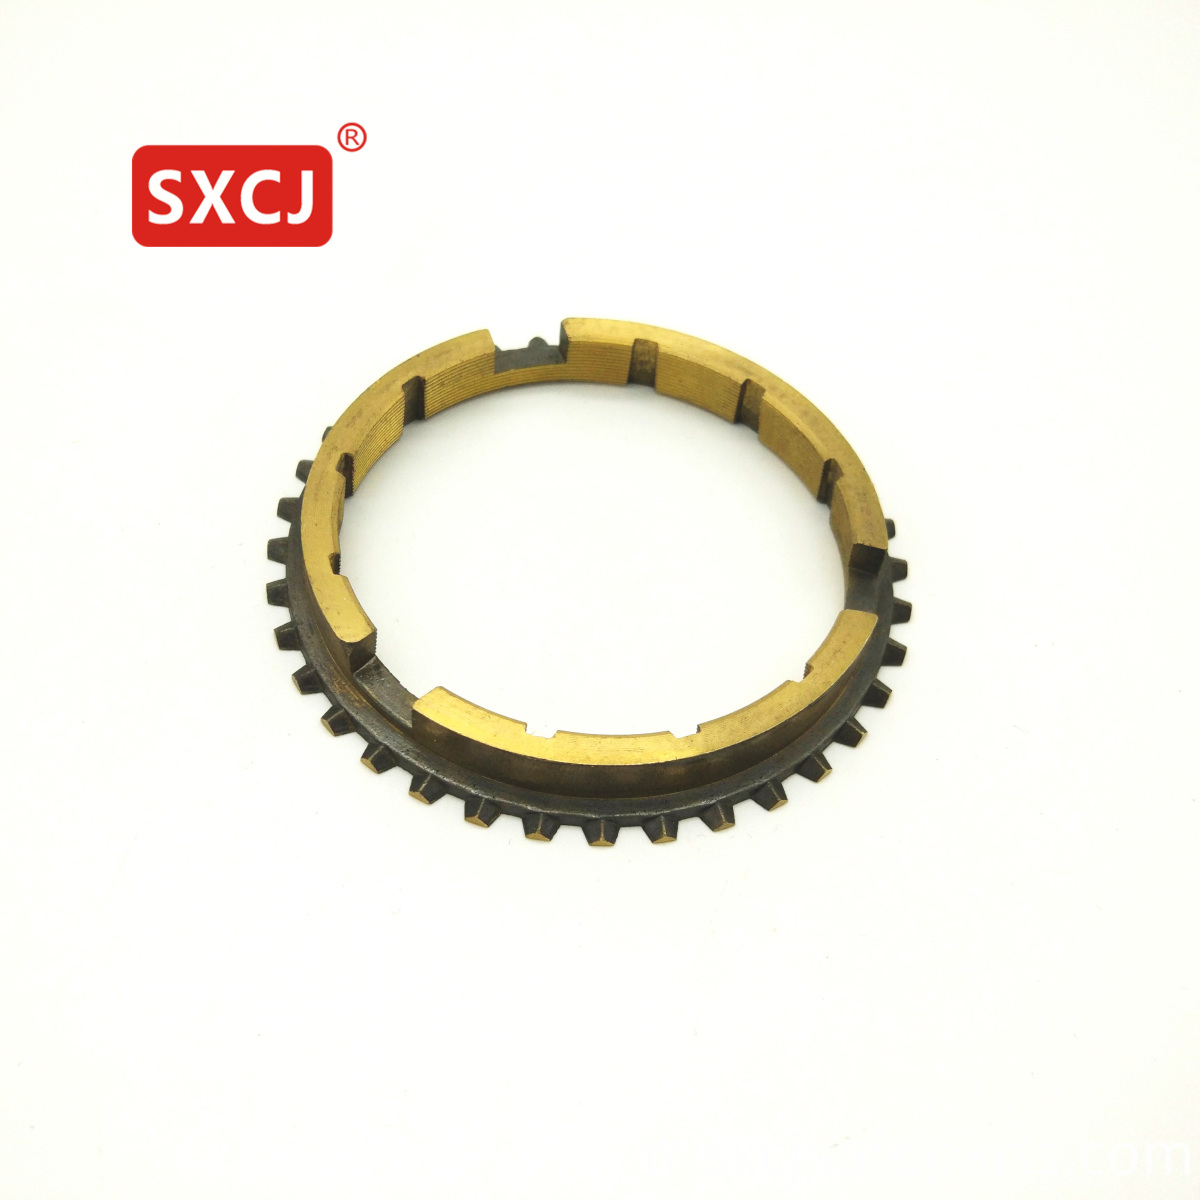 Transmission Parts Gear Ring